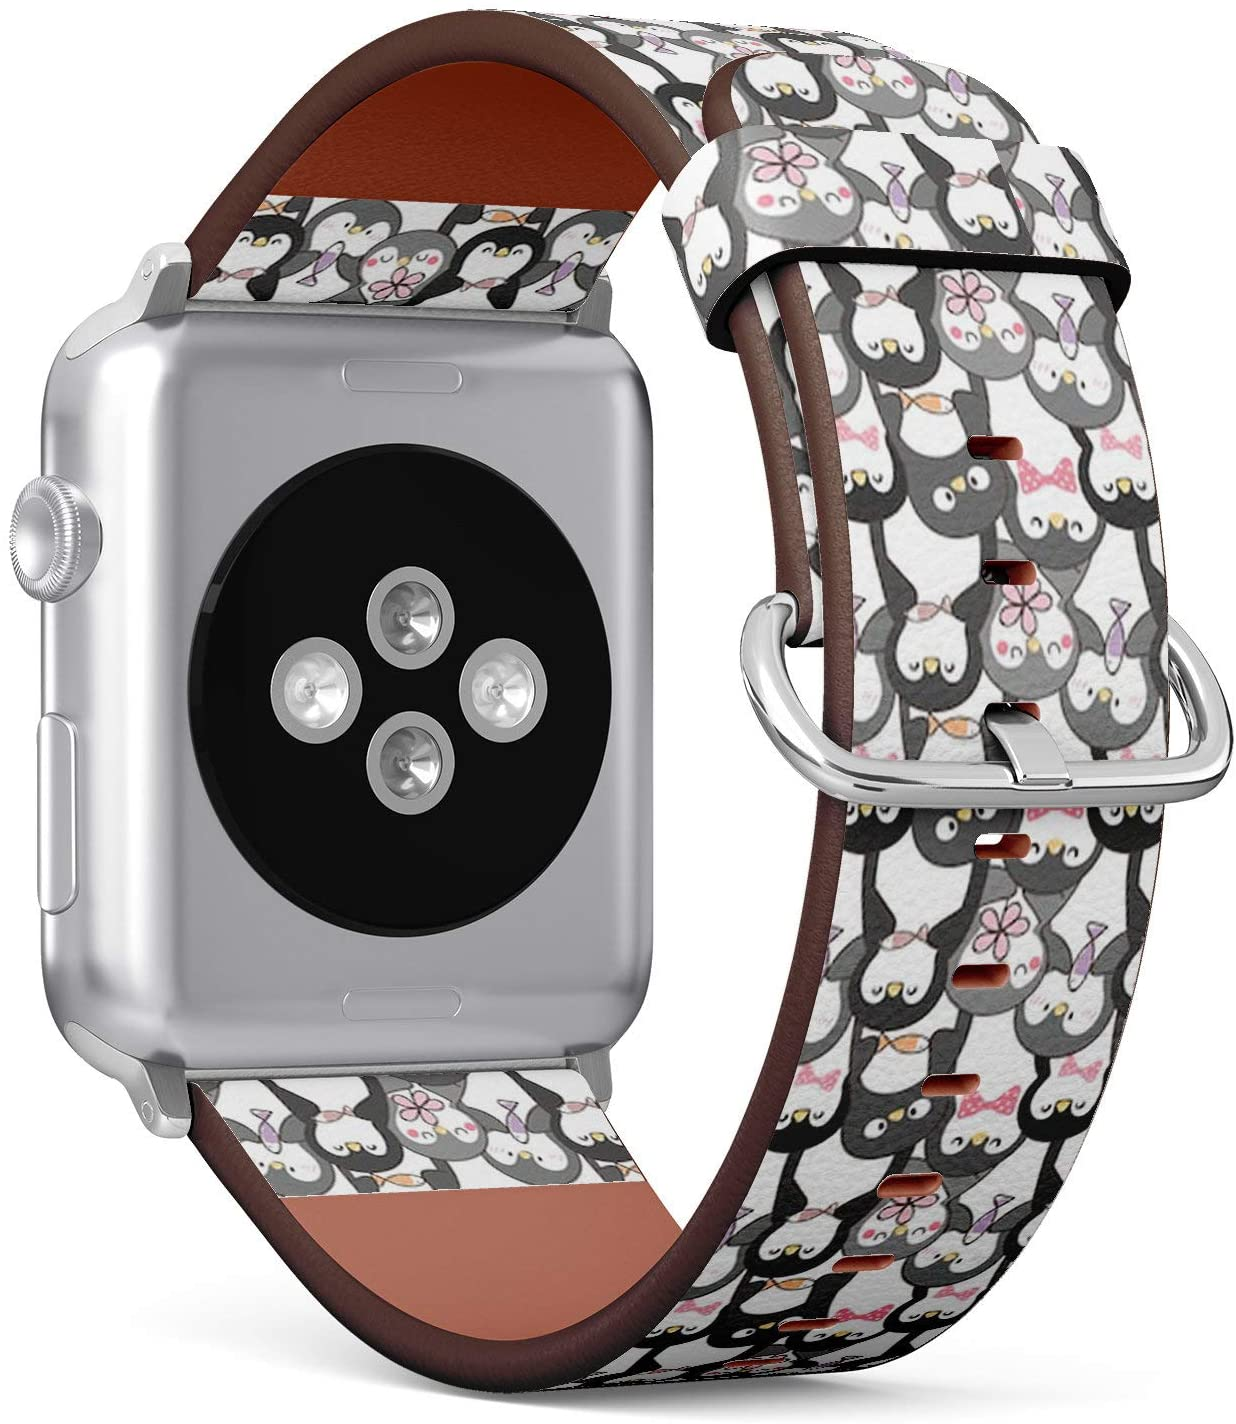 Compatible with Small Apple Watch 38mm & 40mm (Series 5, 4, 3, 2, 1) Leather Watch Wrist Band Strap Bracelet with Stainless Steel Clasp and Adapters (Cute Cartoon Penguin)